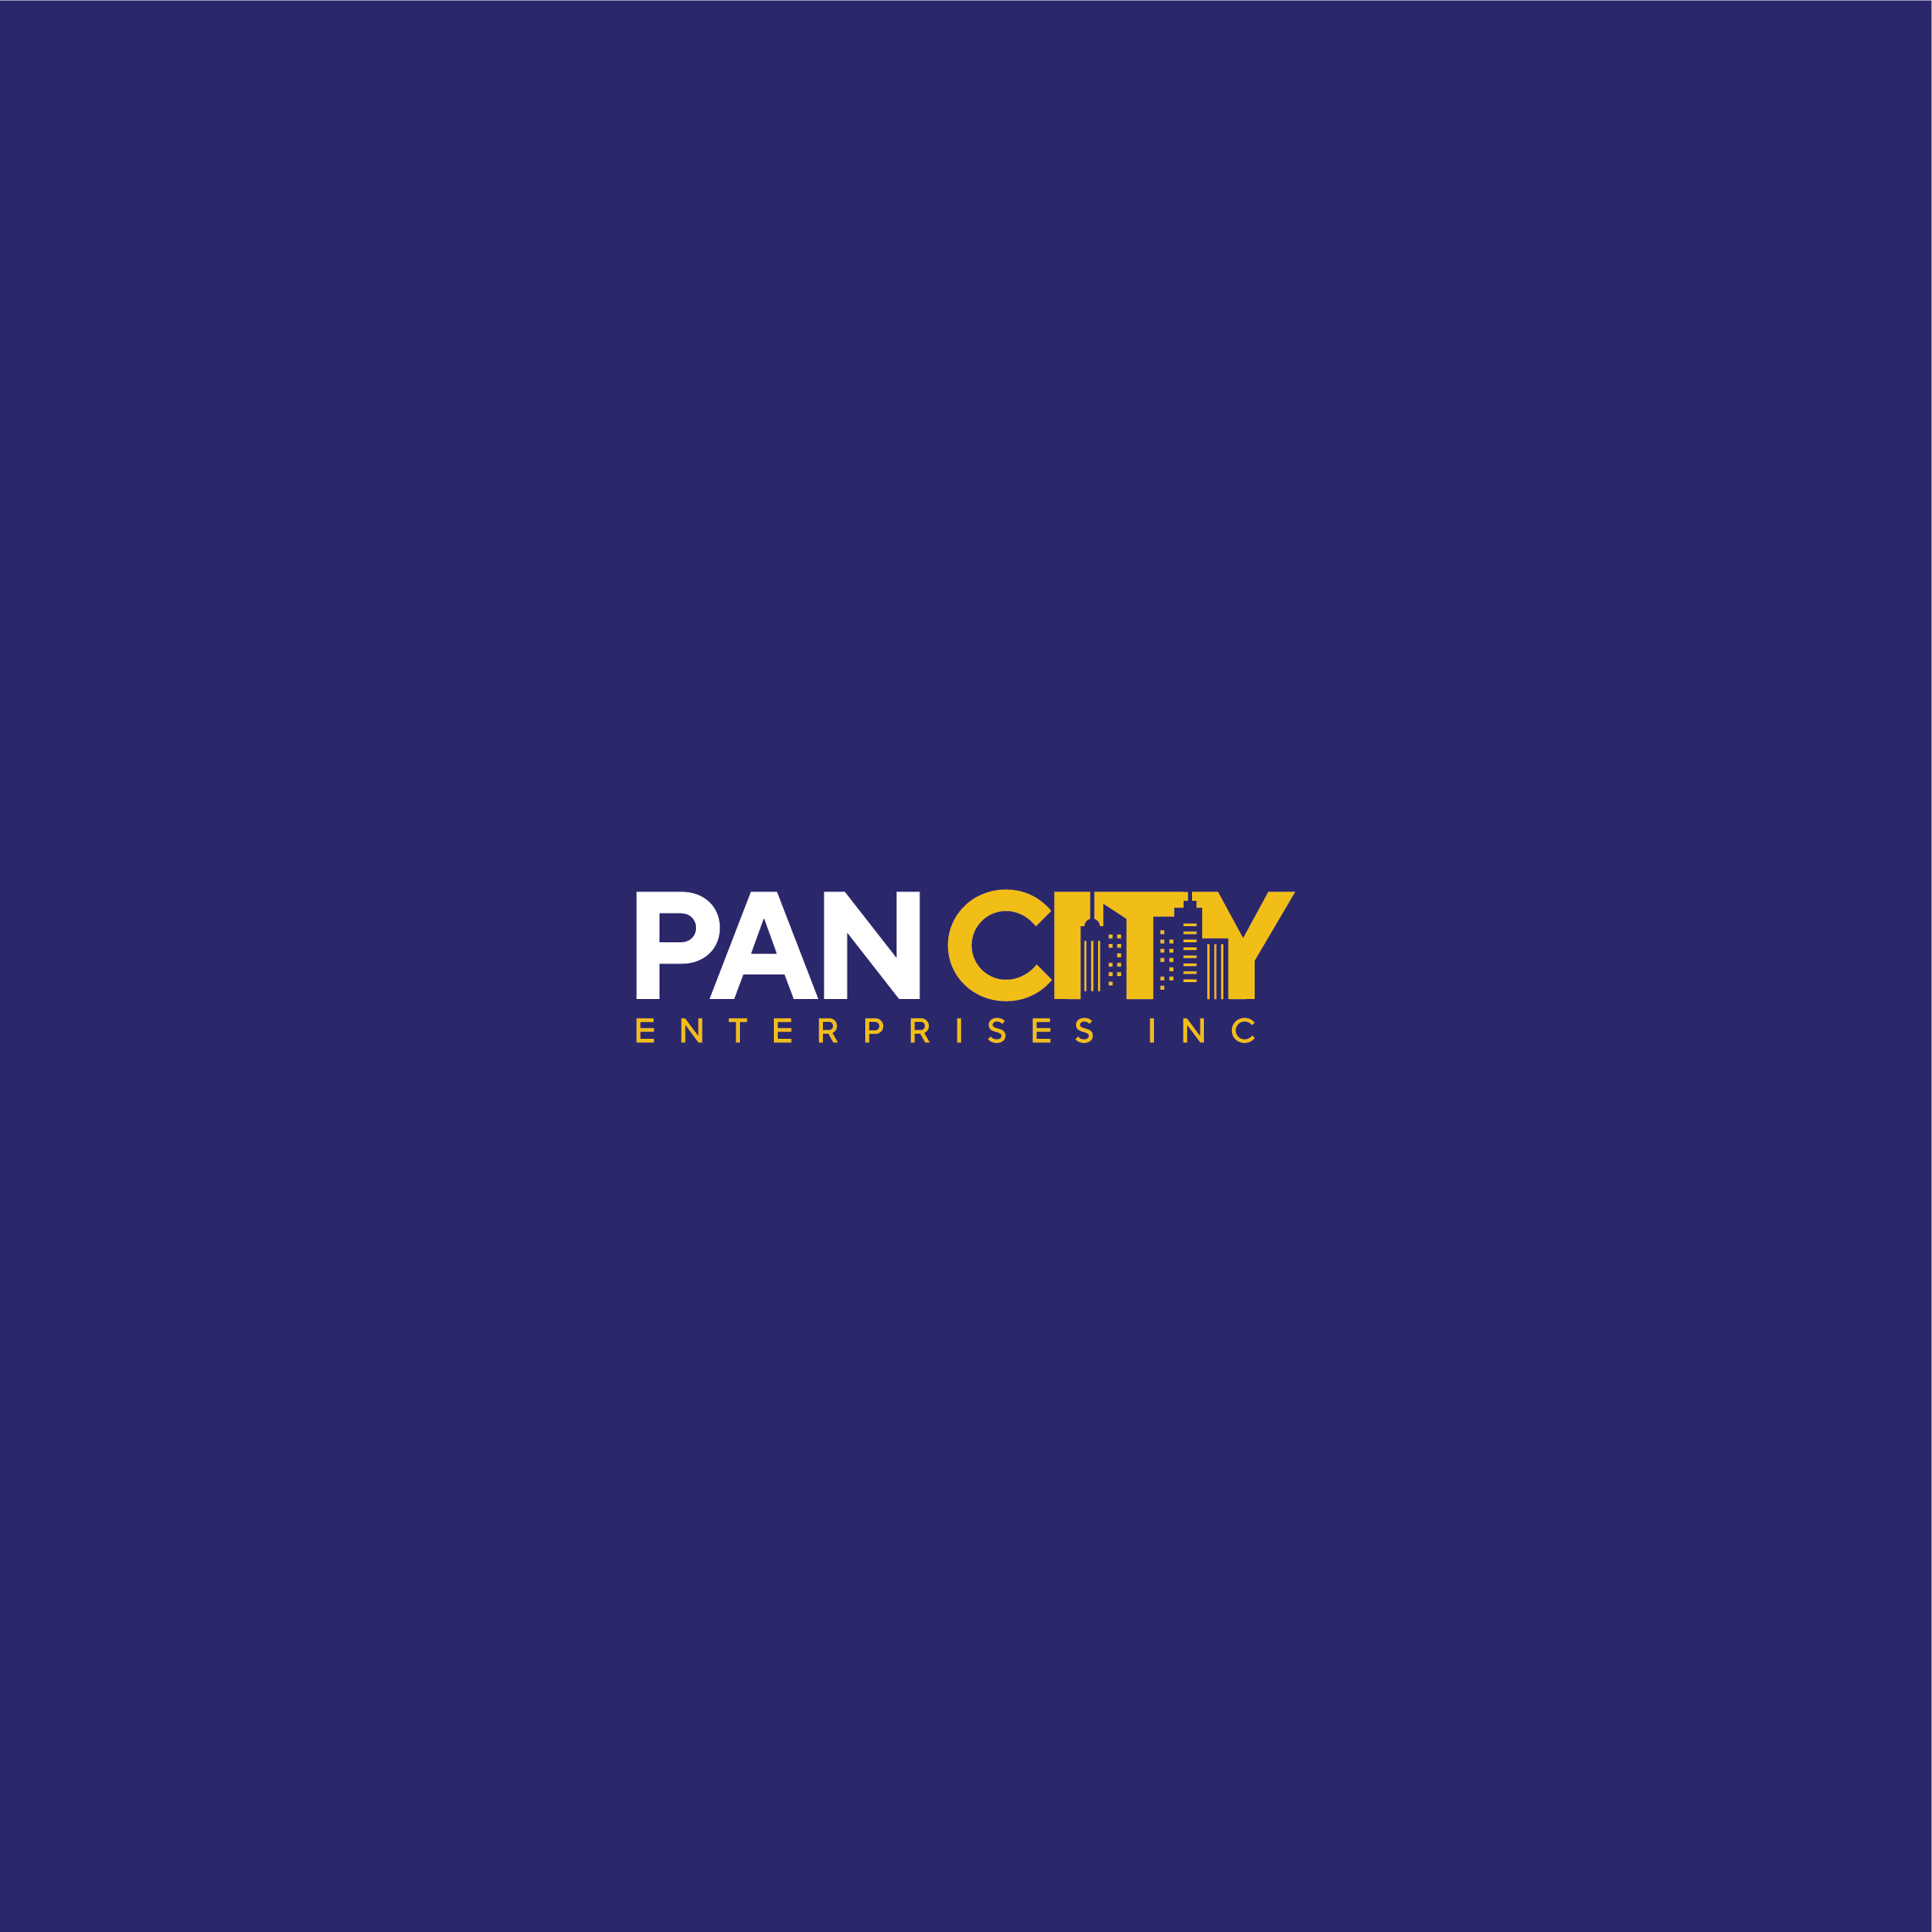 Pan City Enterprises Inc